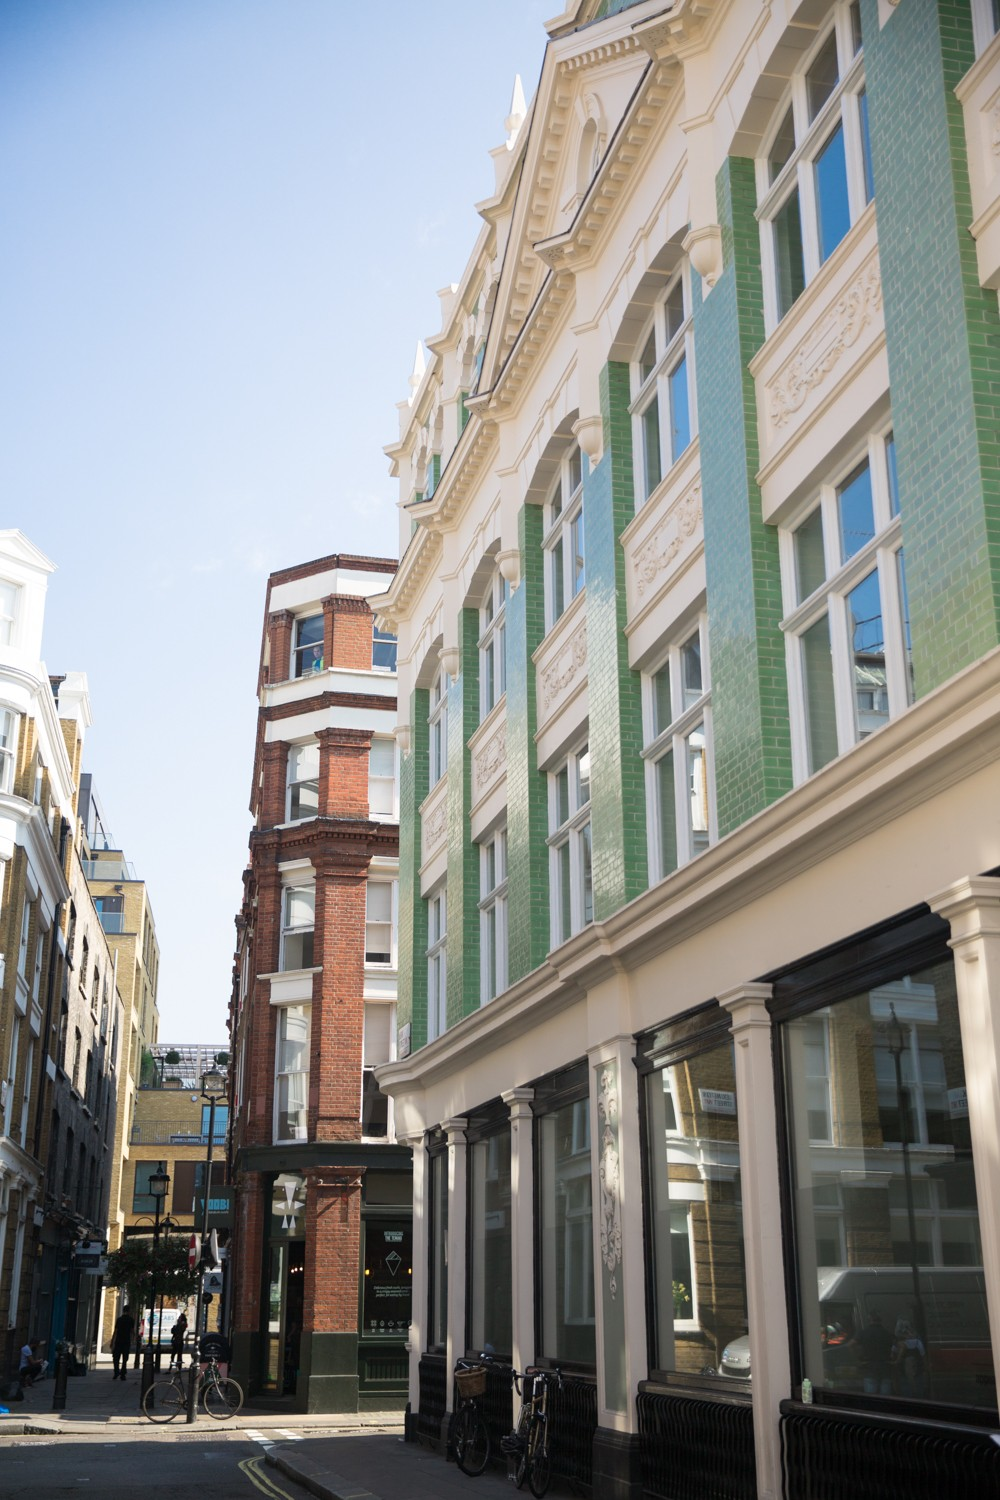 Lina Stores Soho The Londoner Updated 22 december at 11:03 gmt. lina stores soho the londoner